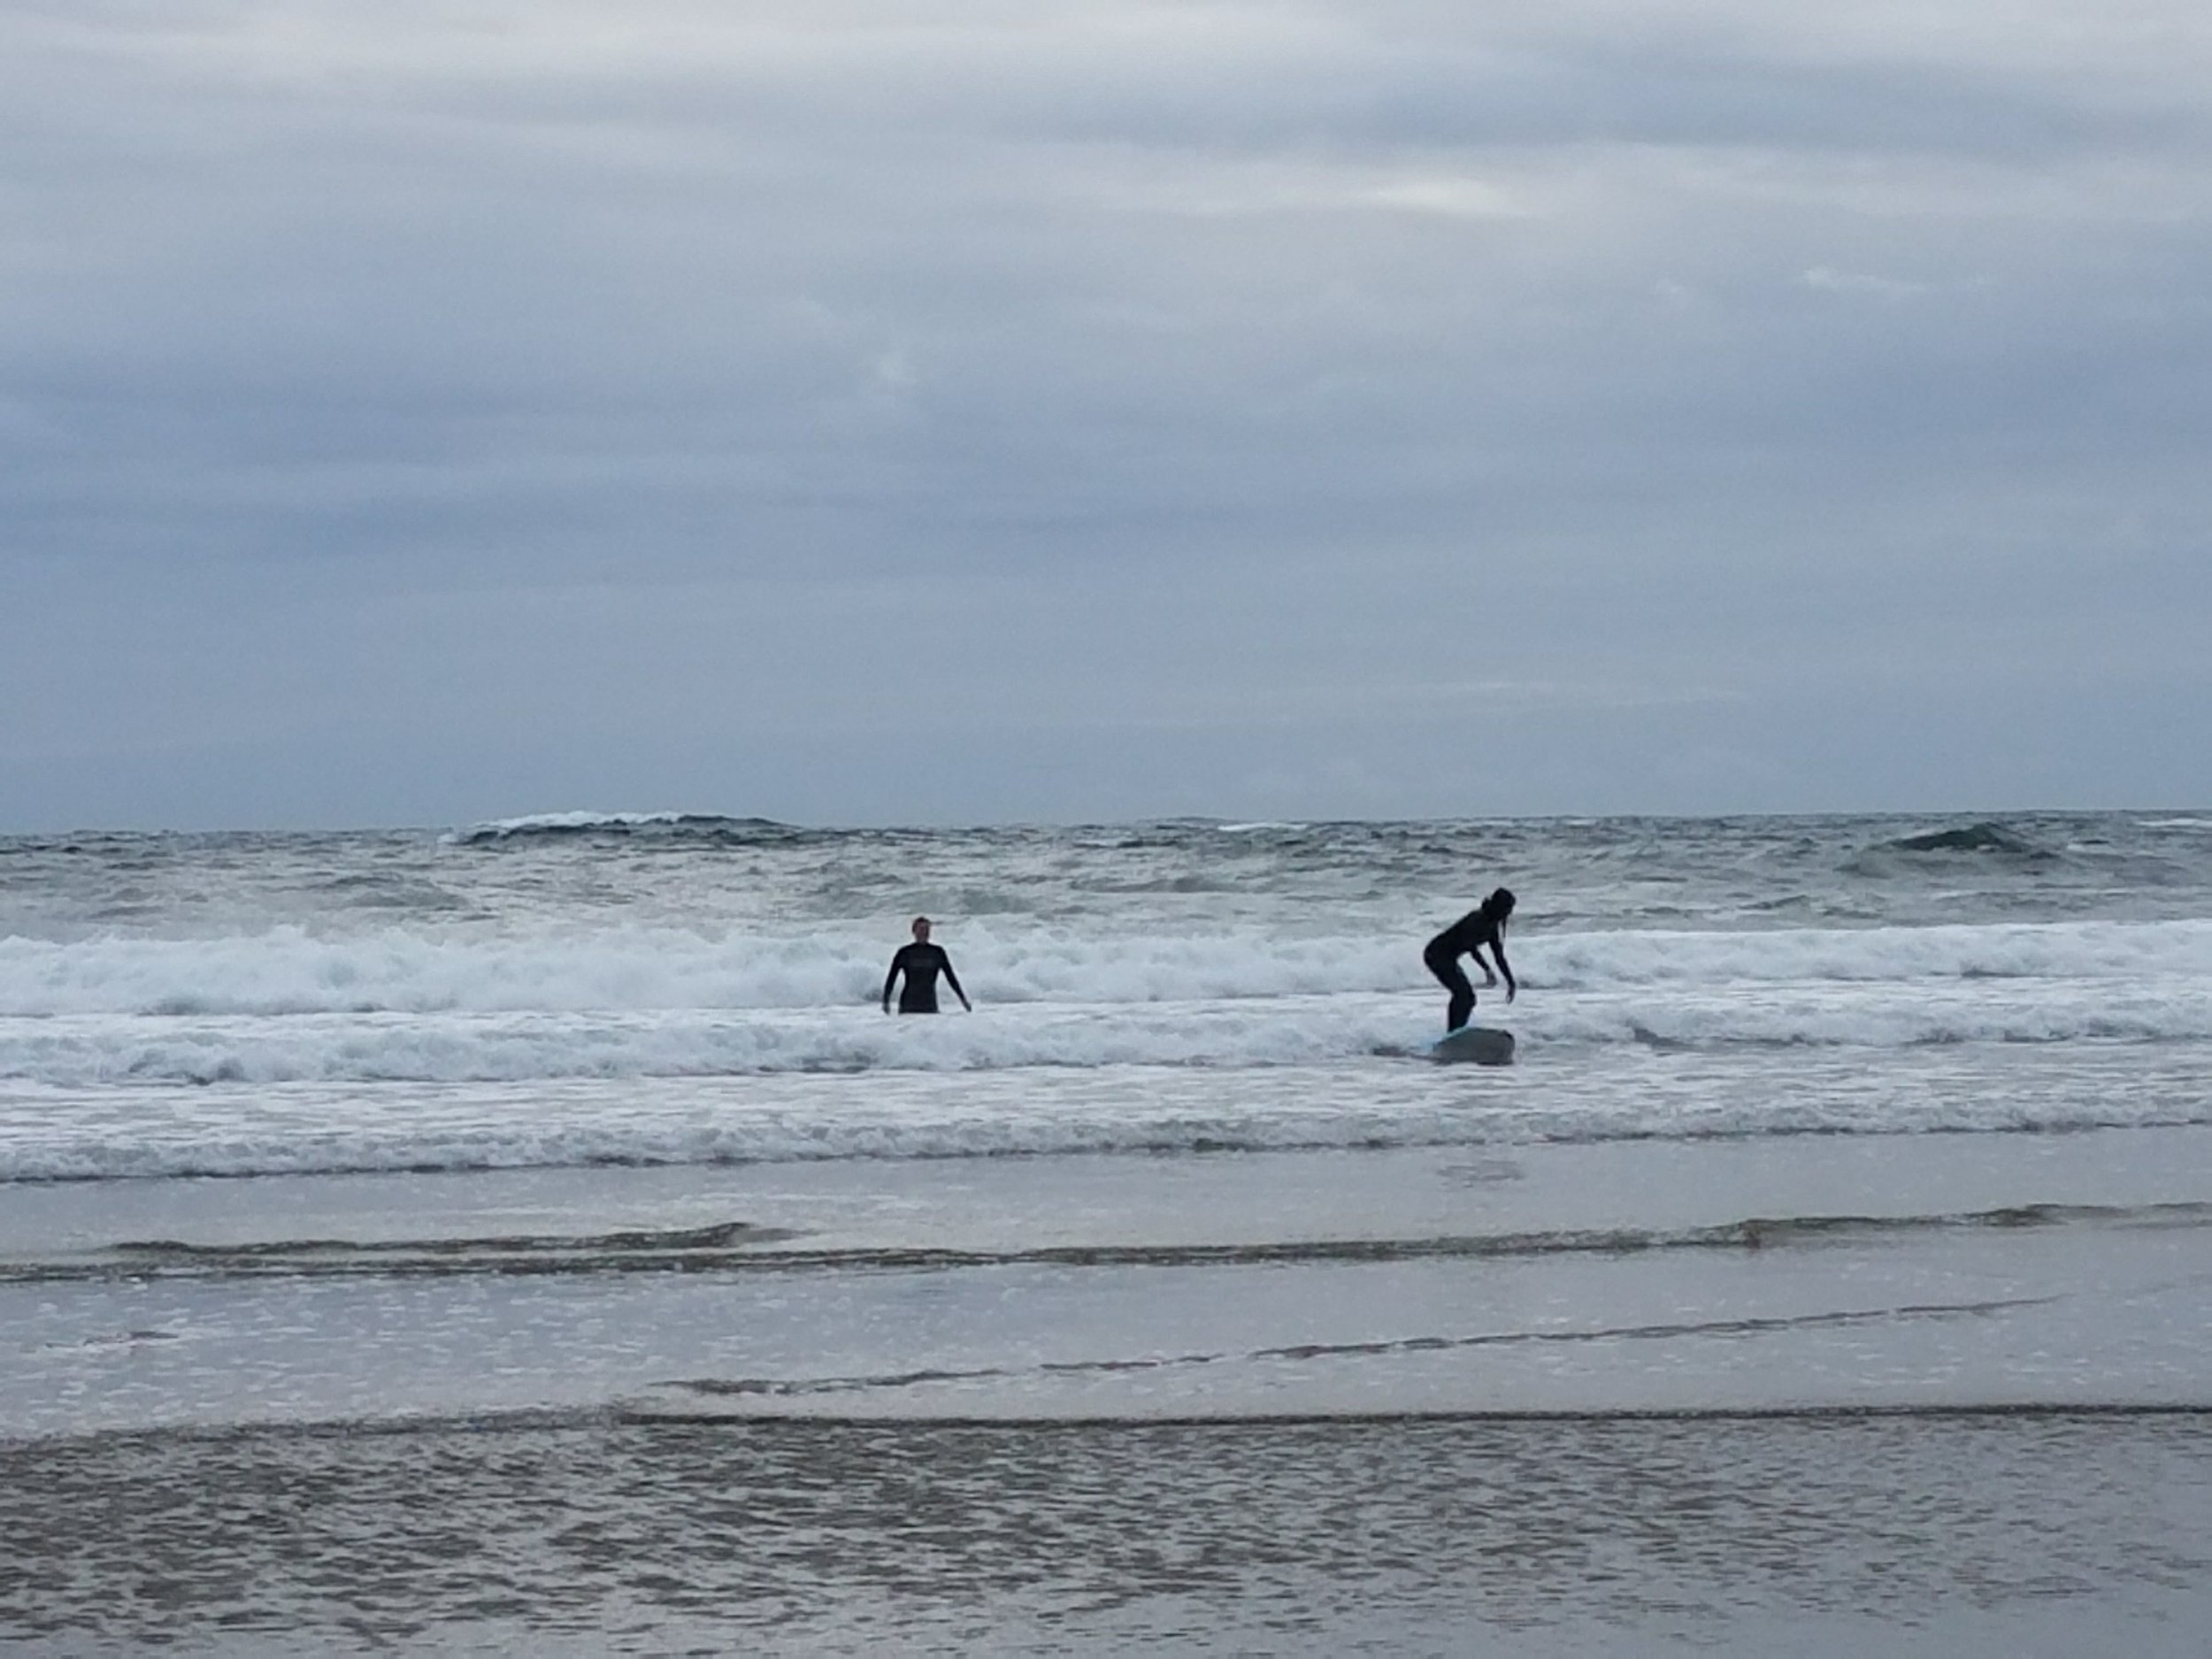 She can surf somewhat, me on the left on the other hand...